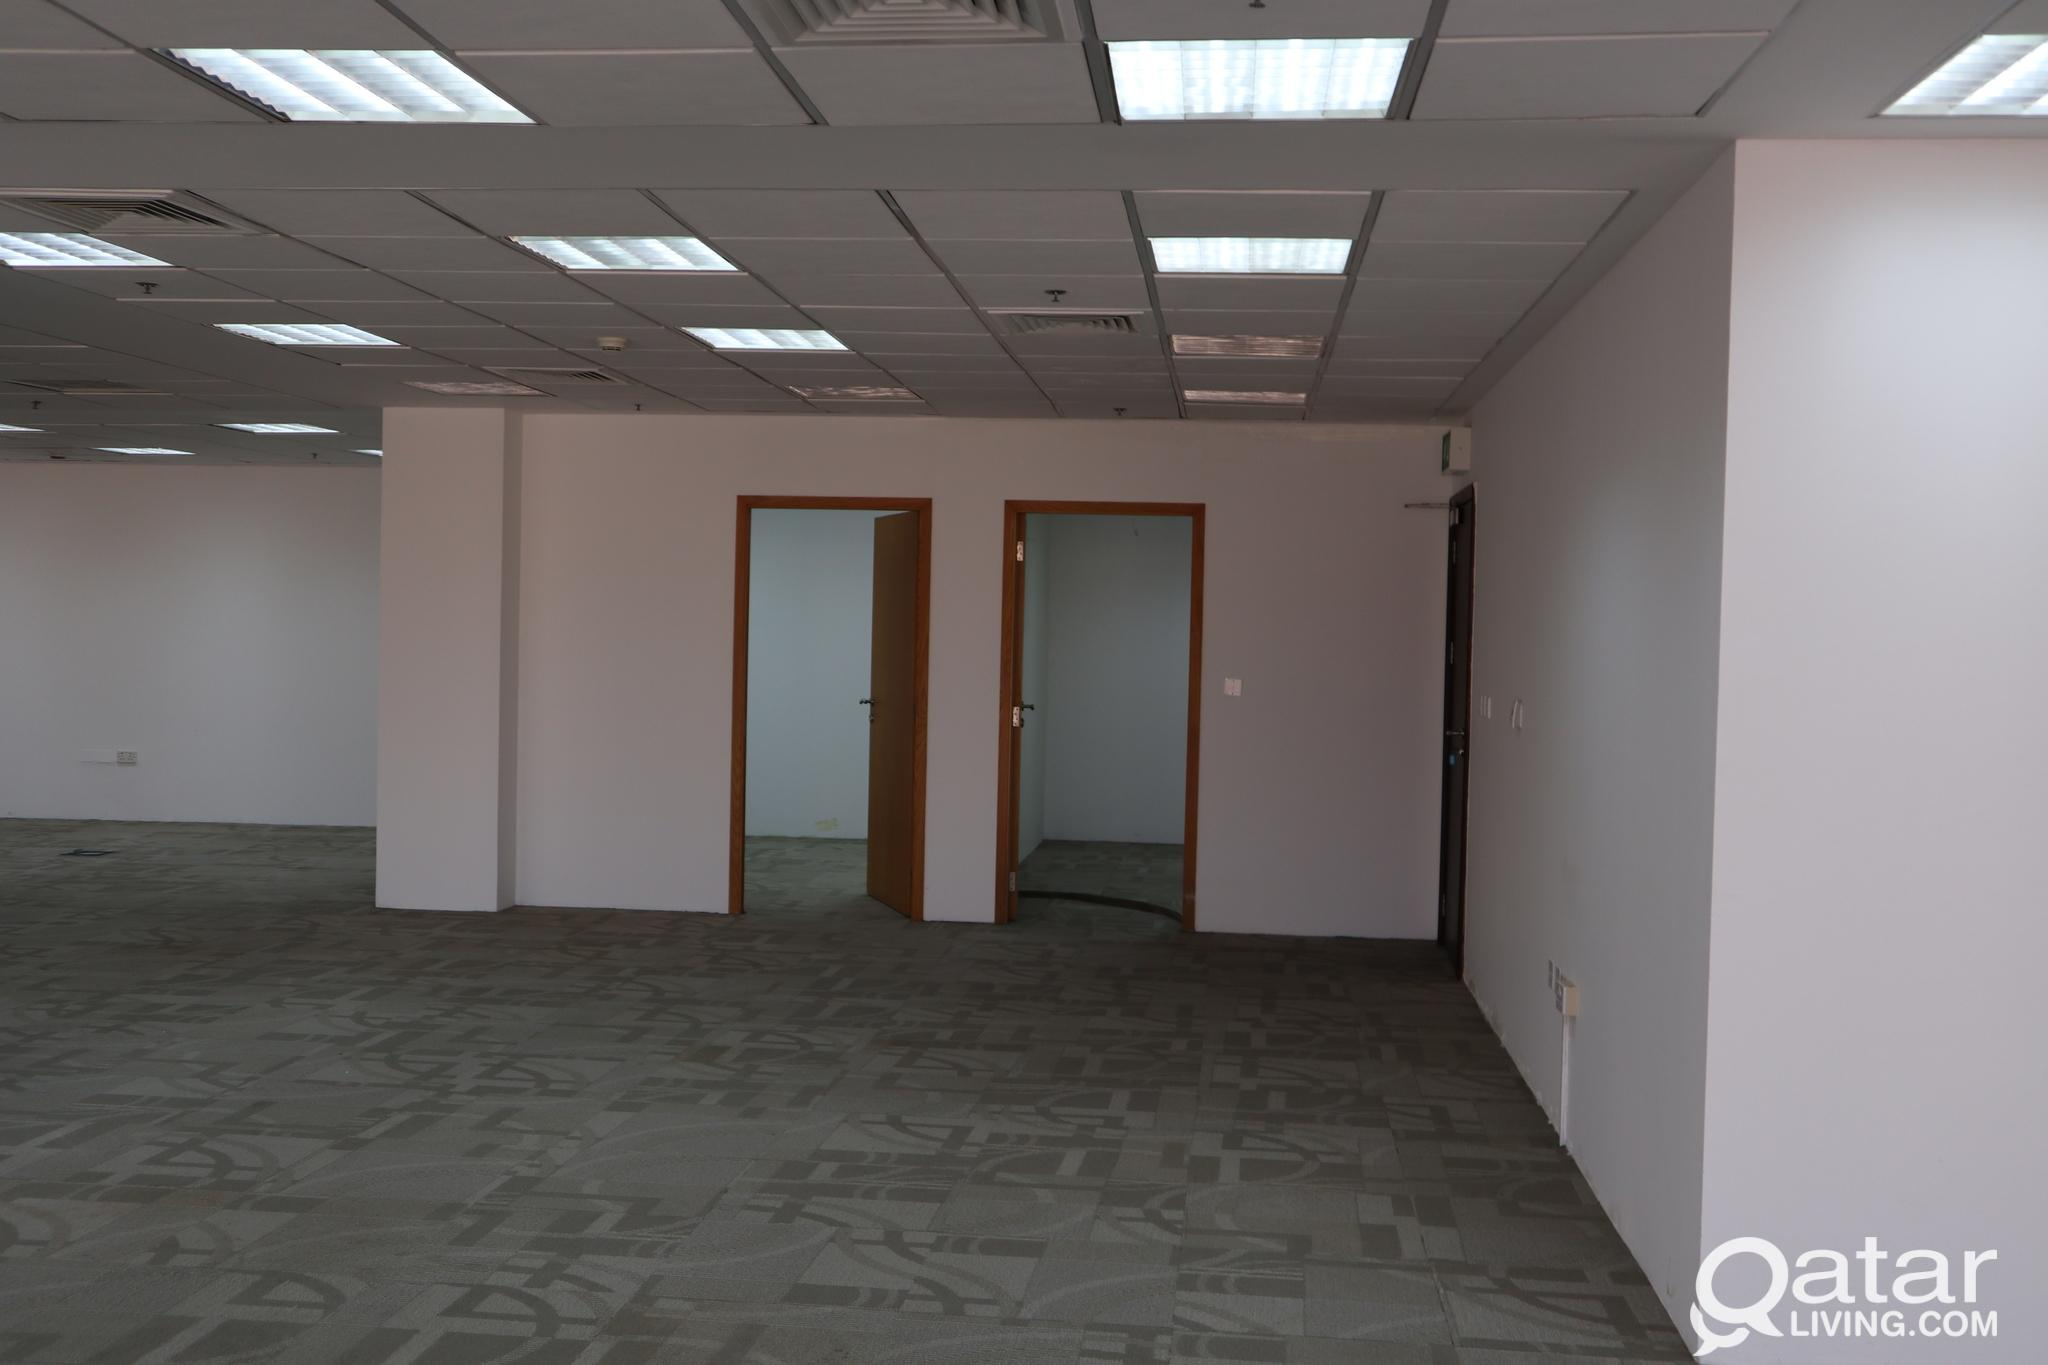 Special Offer for Office spaces / One Month Free